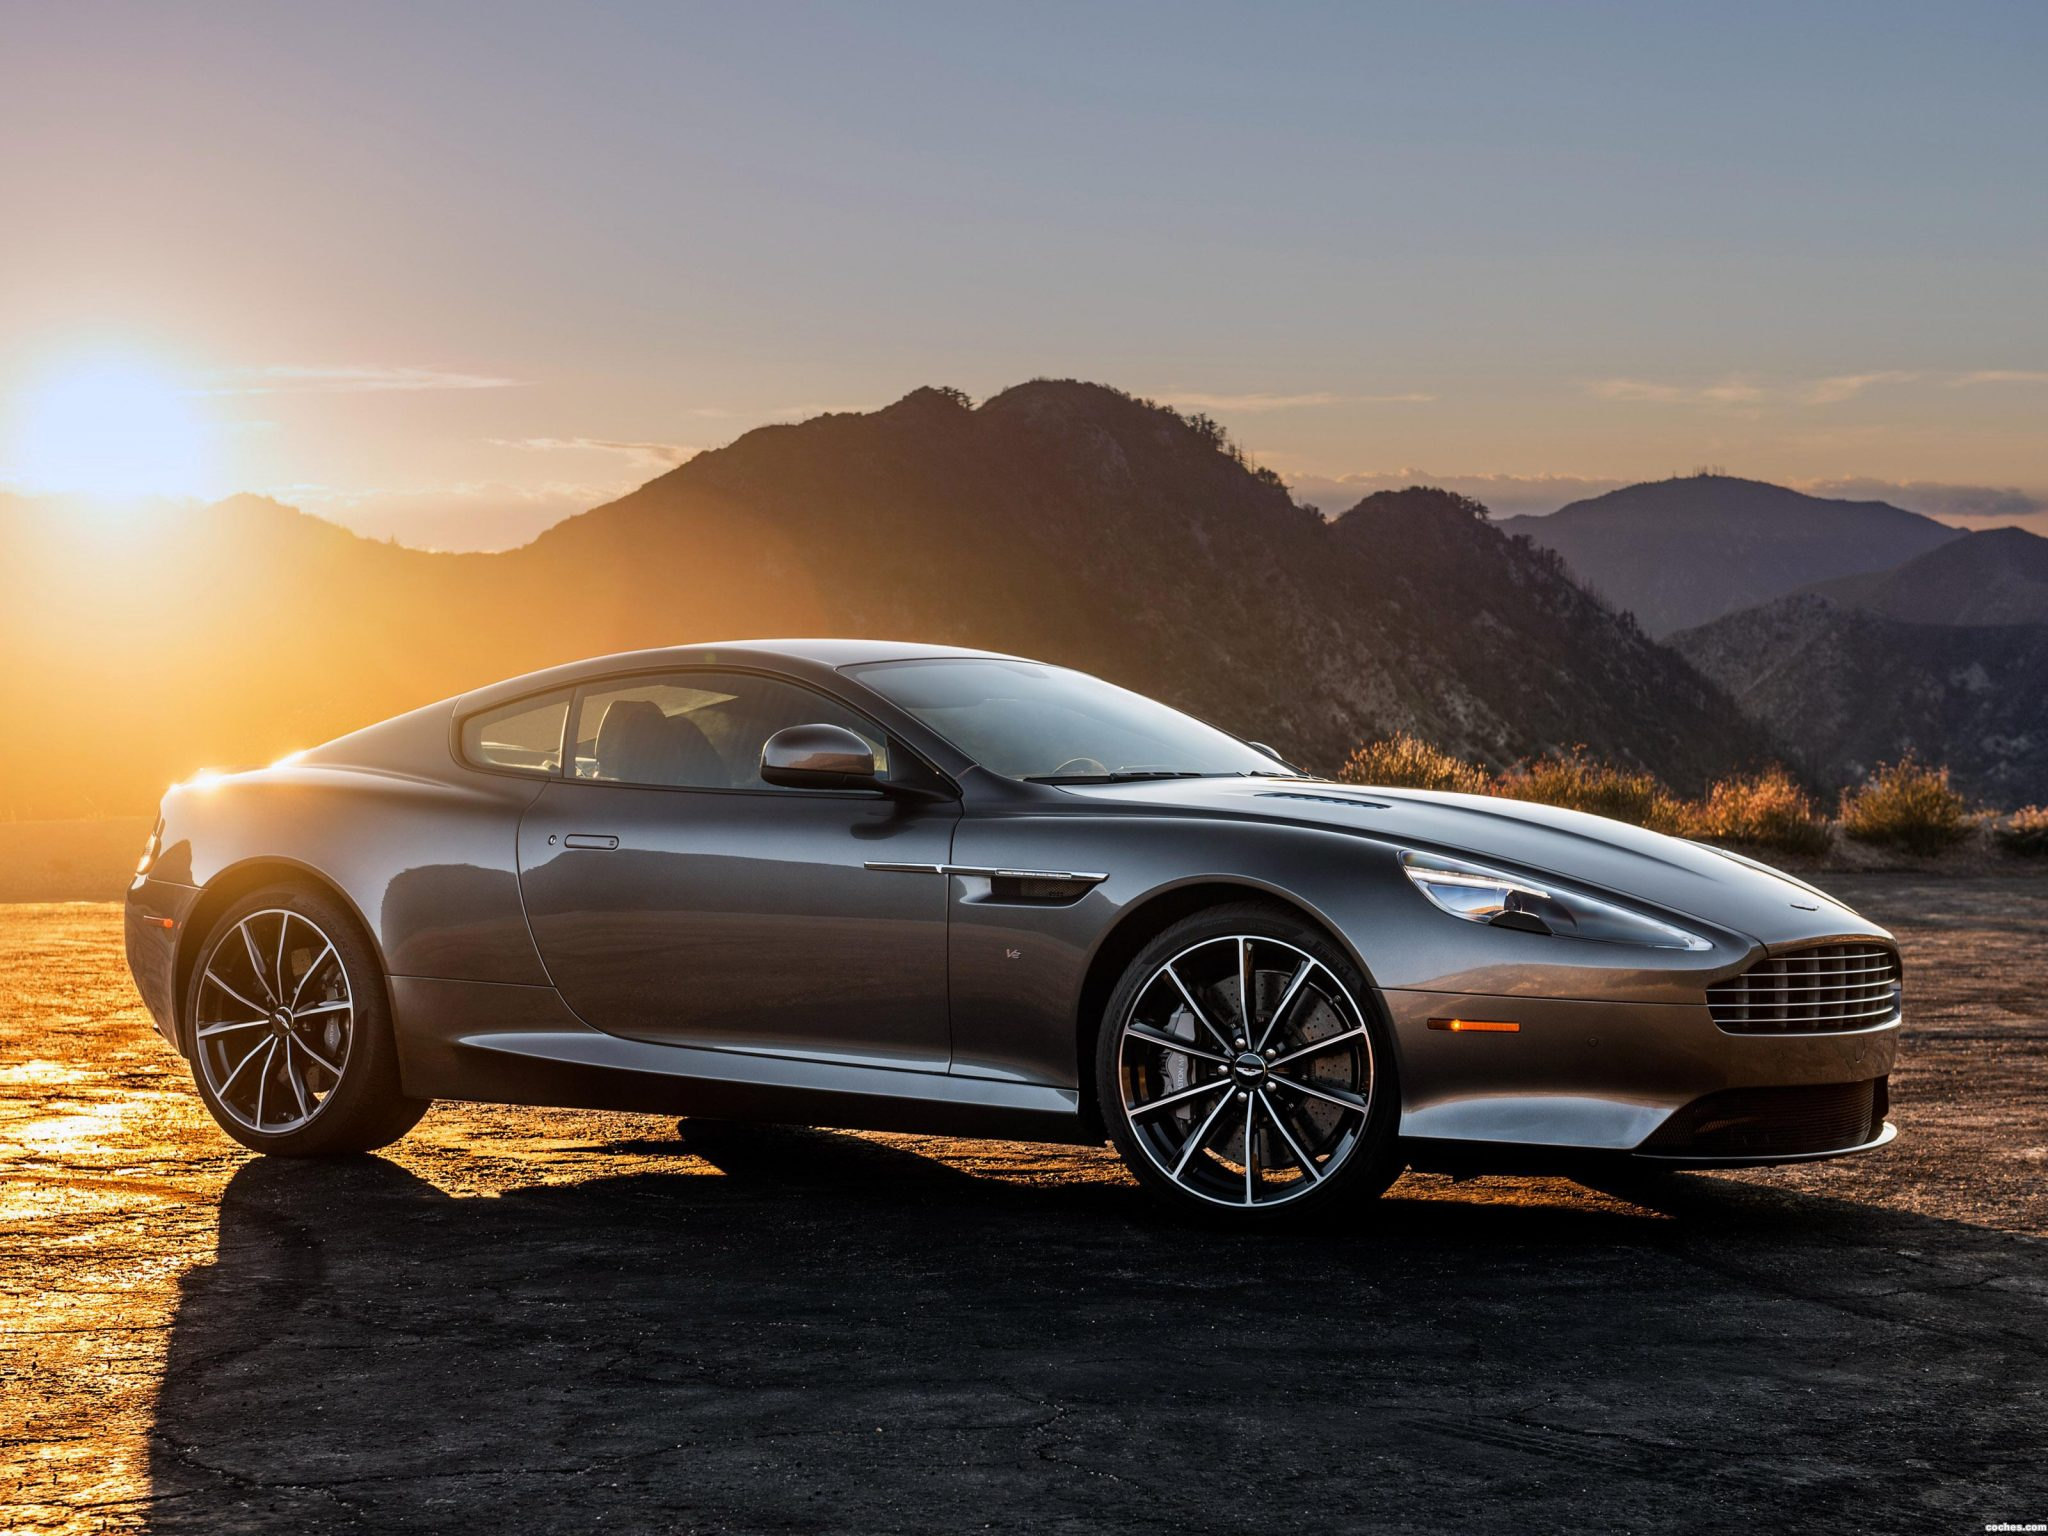 aston martin db9 alquiler alquiler venta renting de coches de lujo. Black Bedroom Furniture Sets. Home Design Ideas